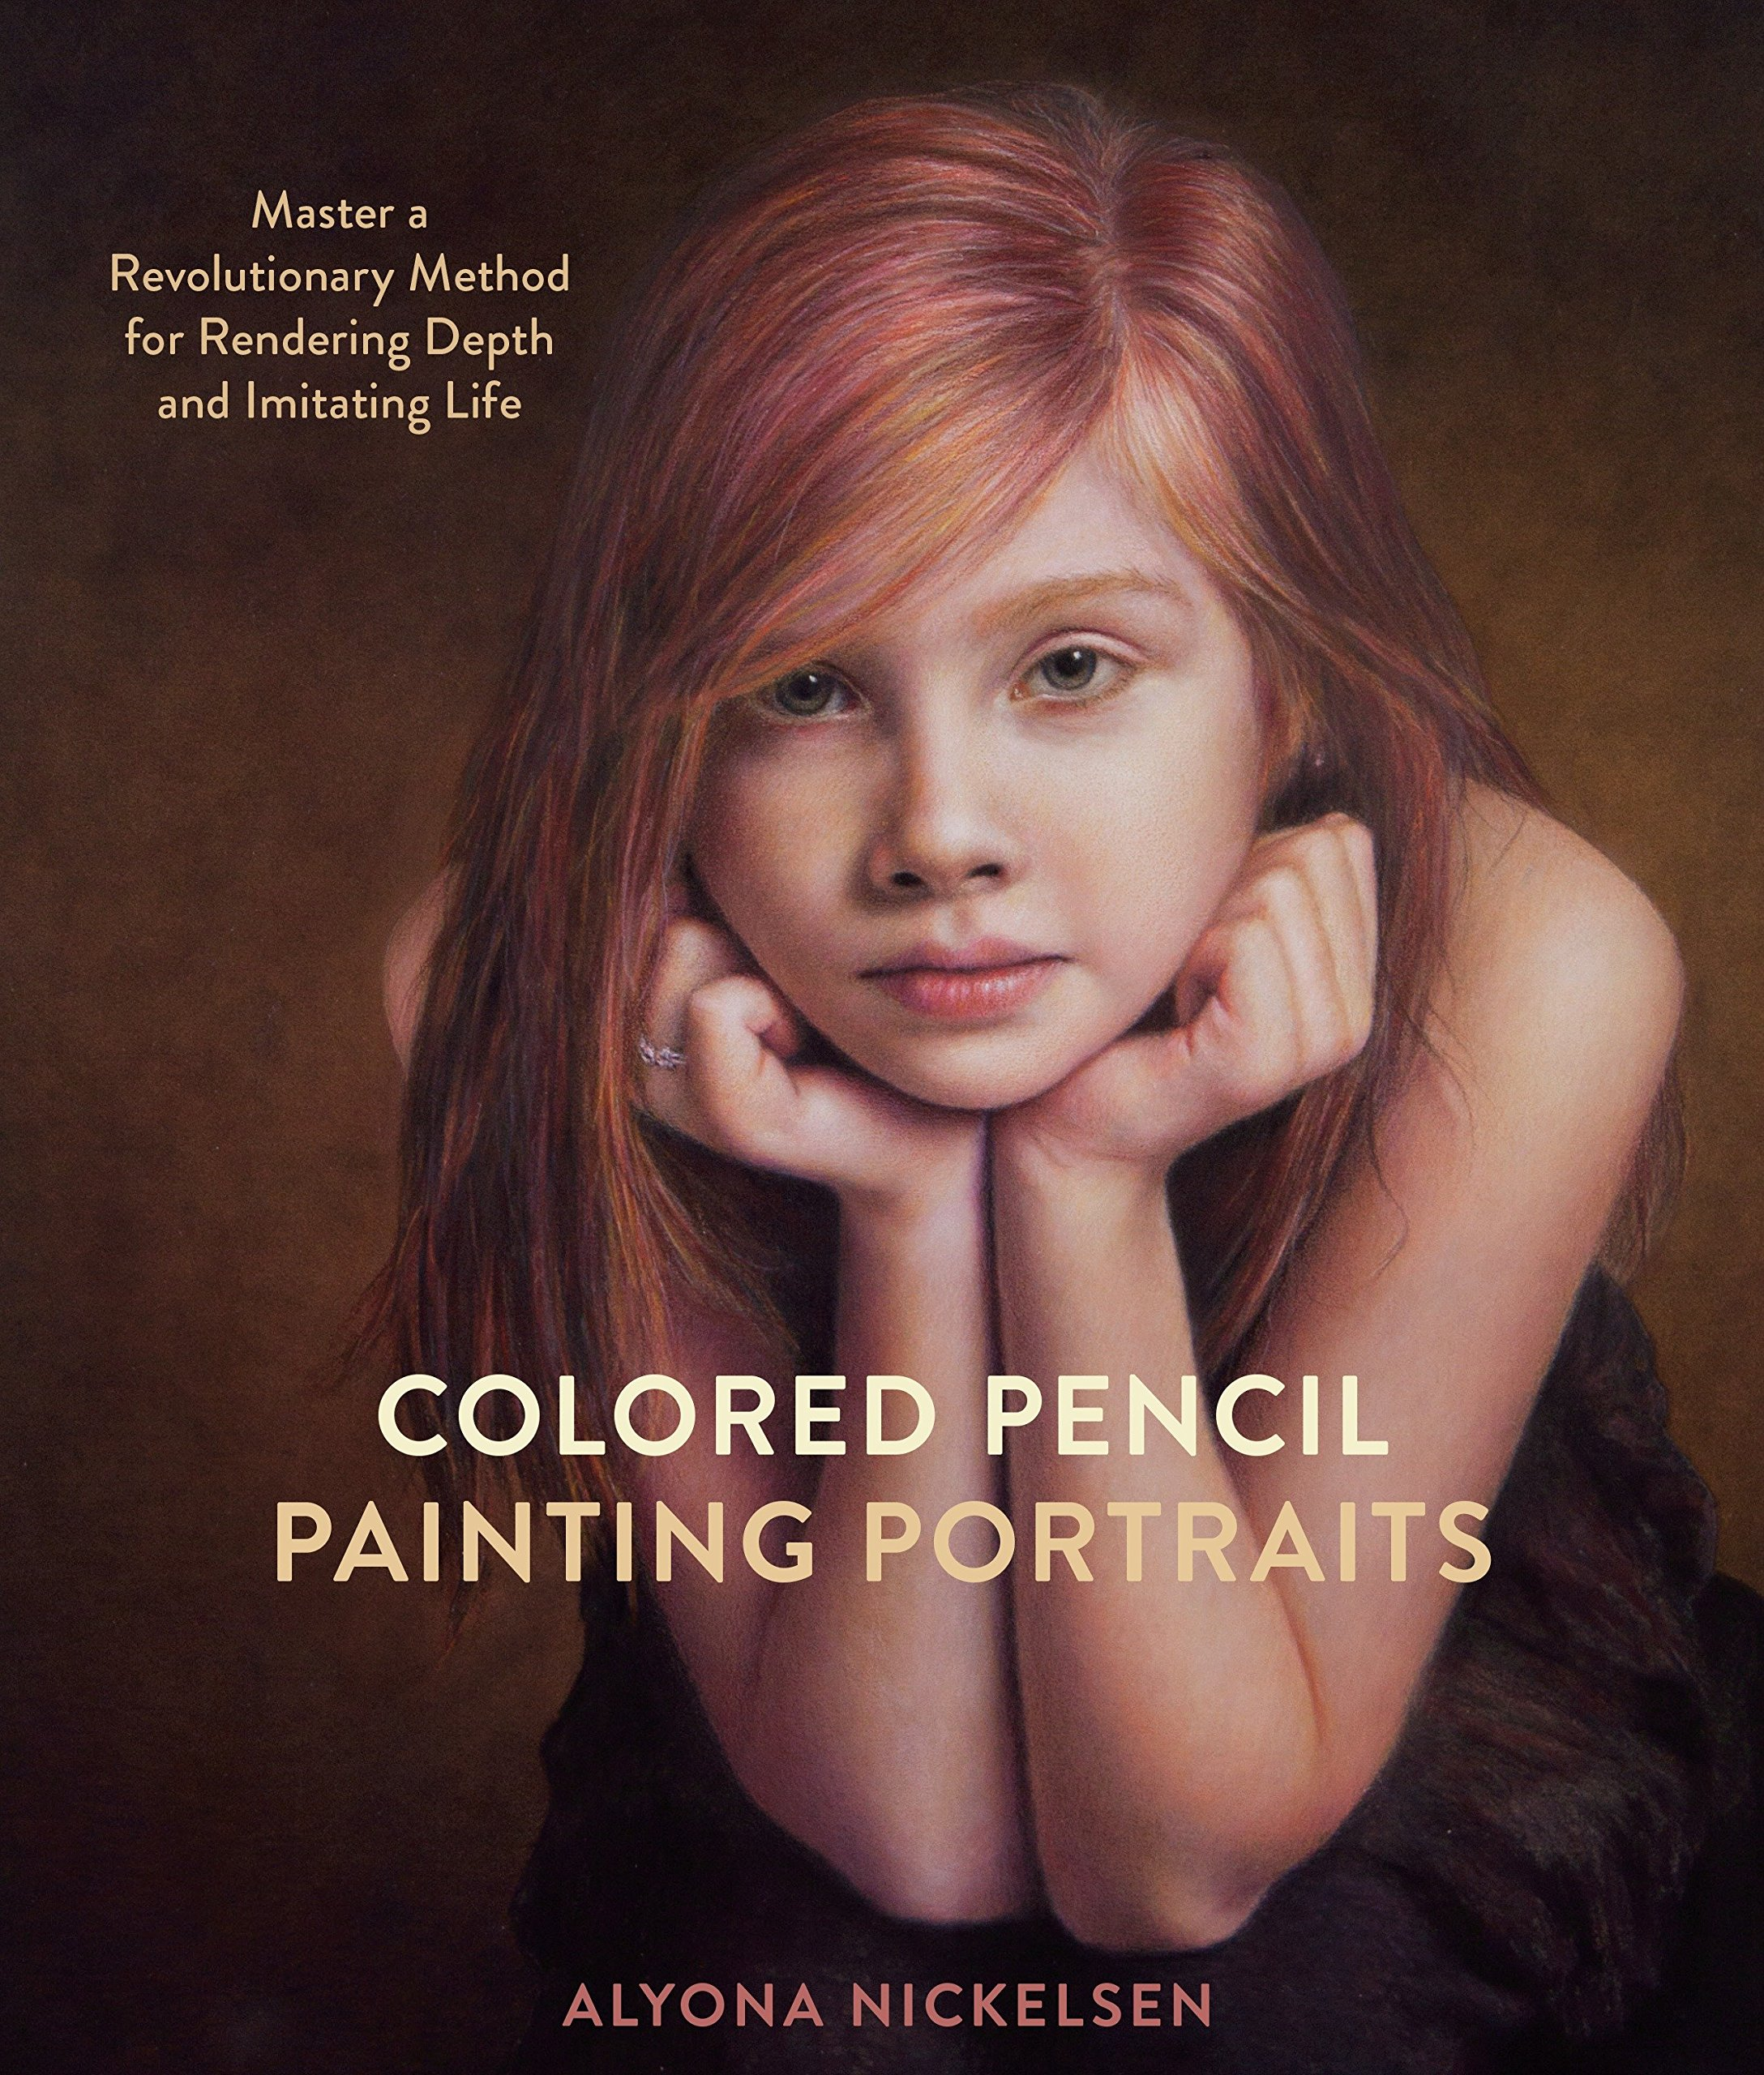 Colored pencil painting portraits master a revolutionary method for